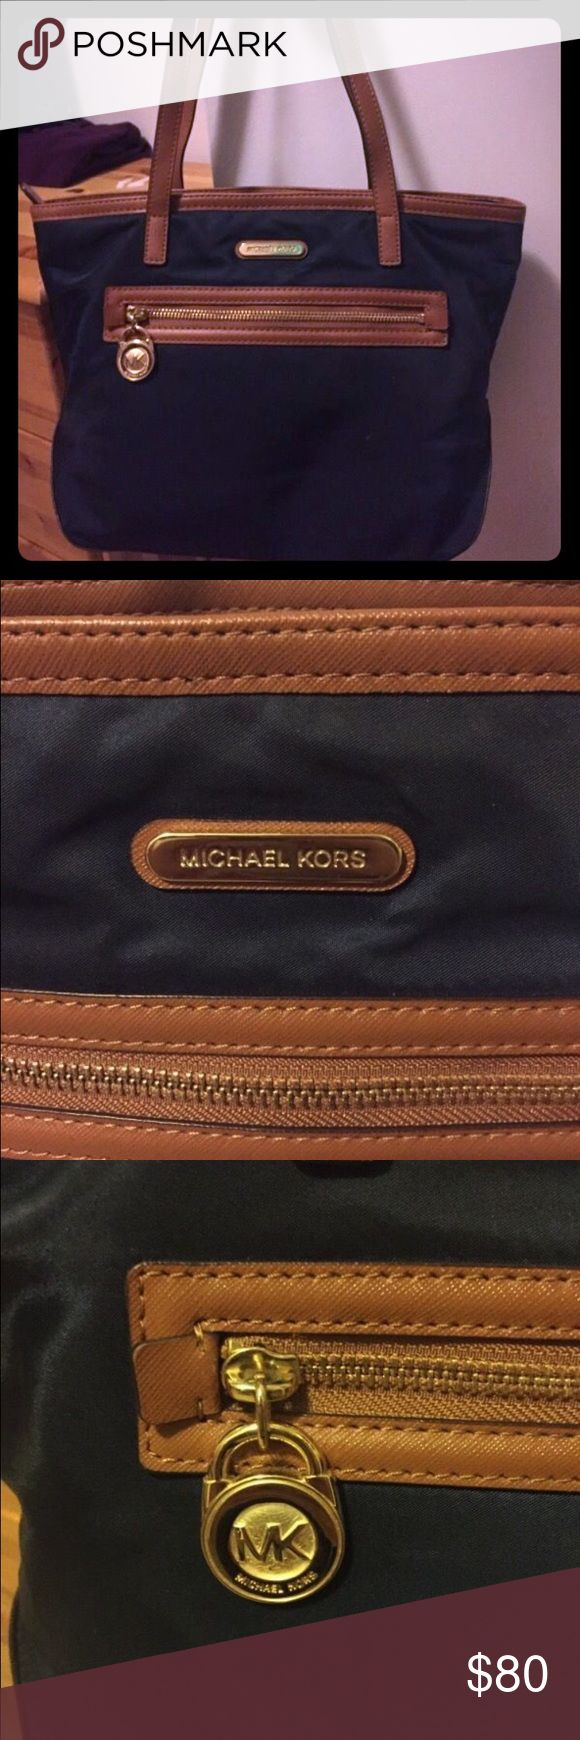 Michael Kors Kempton Navy Purse This is a Michael Kors purse in navy and brown. It is a medium sized shoulder bag. In great condition!! MICHAEL Michael Kors Bags Shoulder Bags